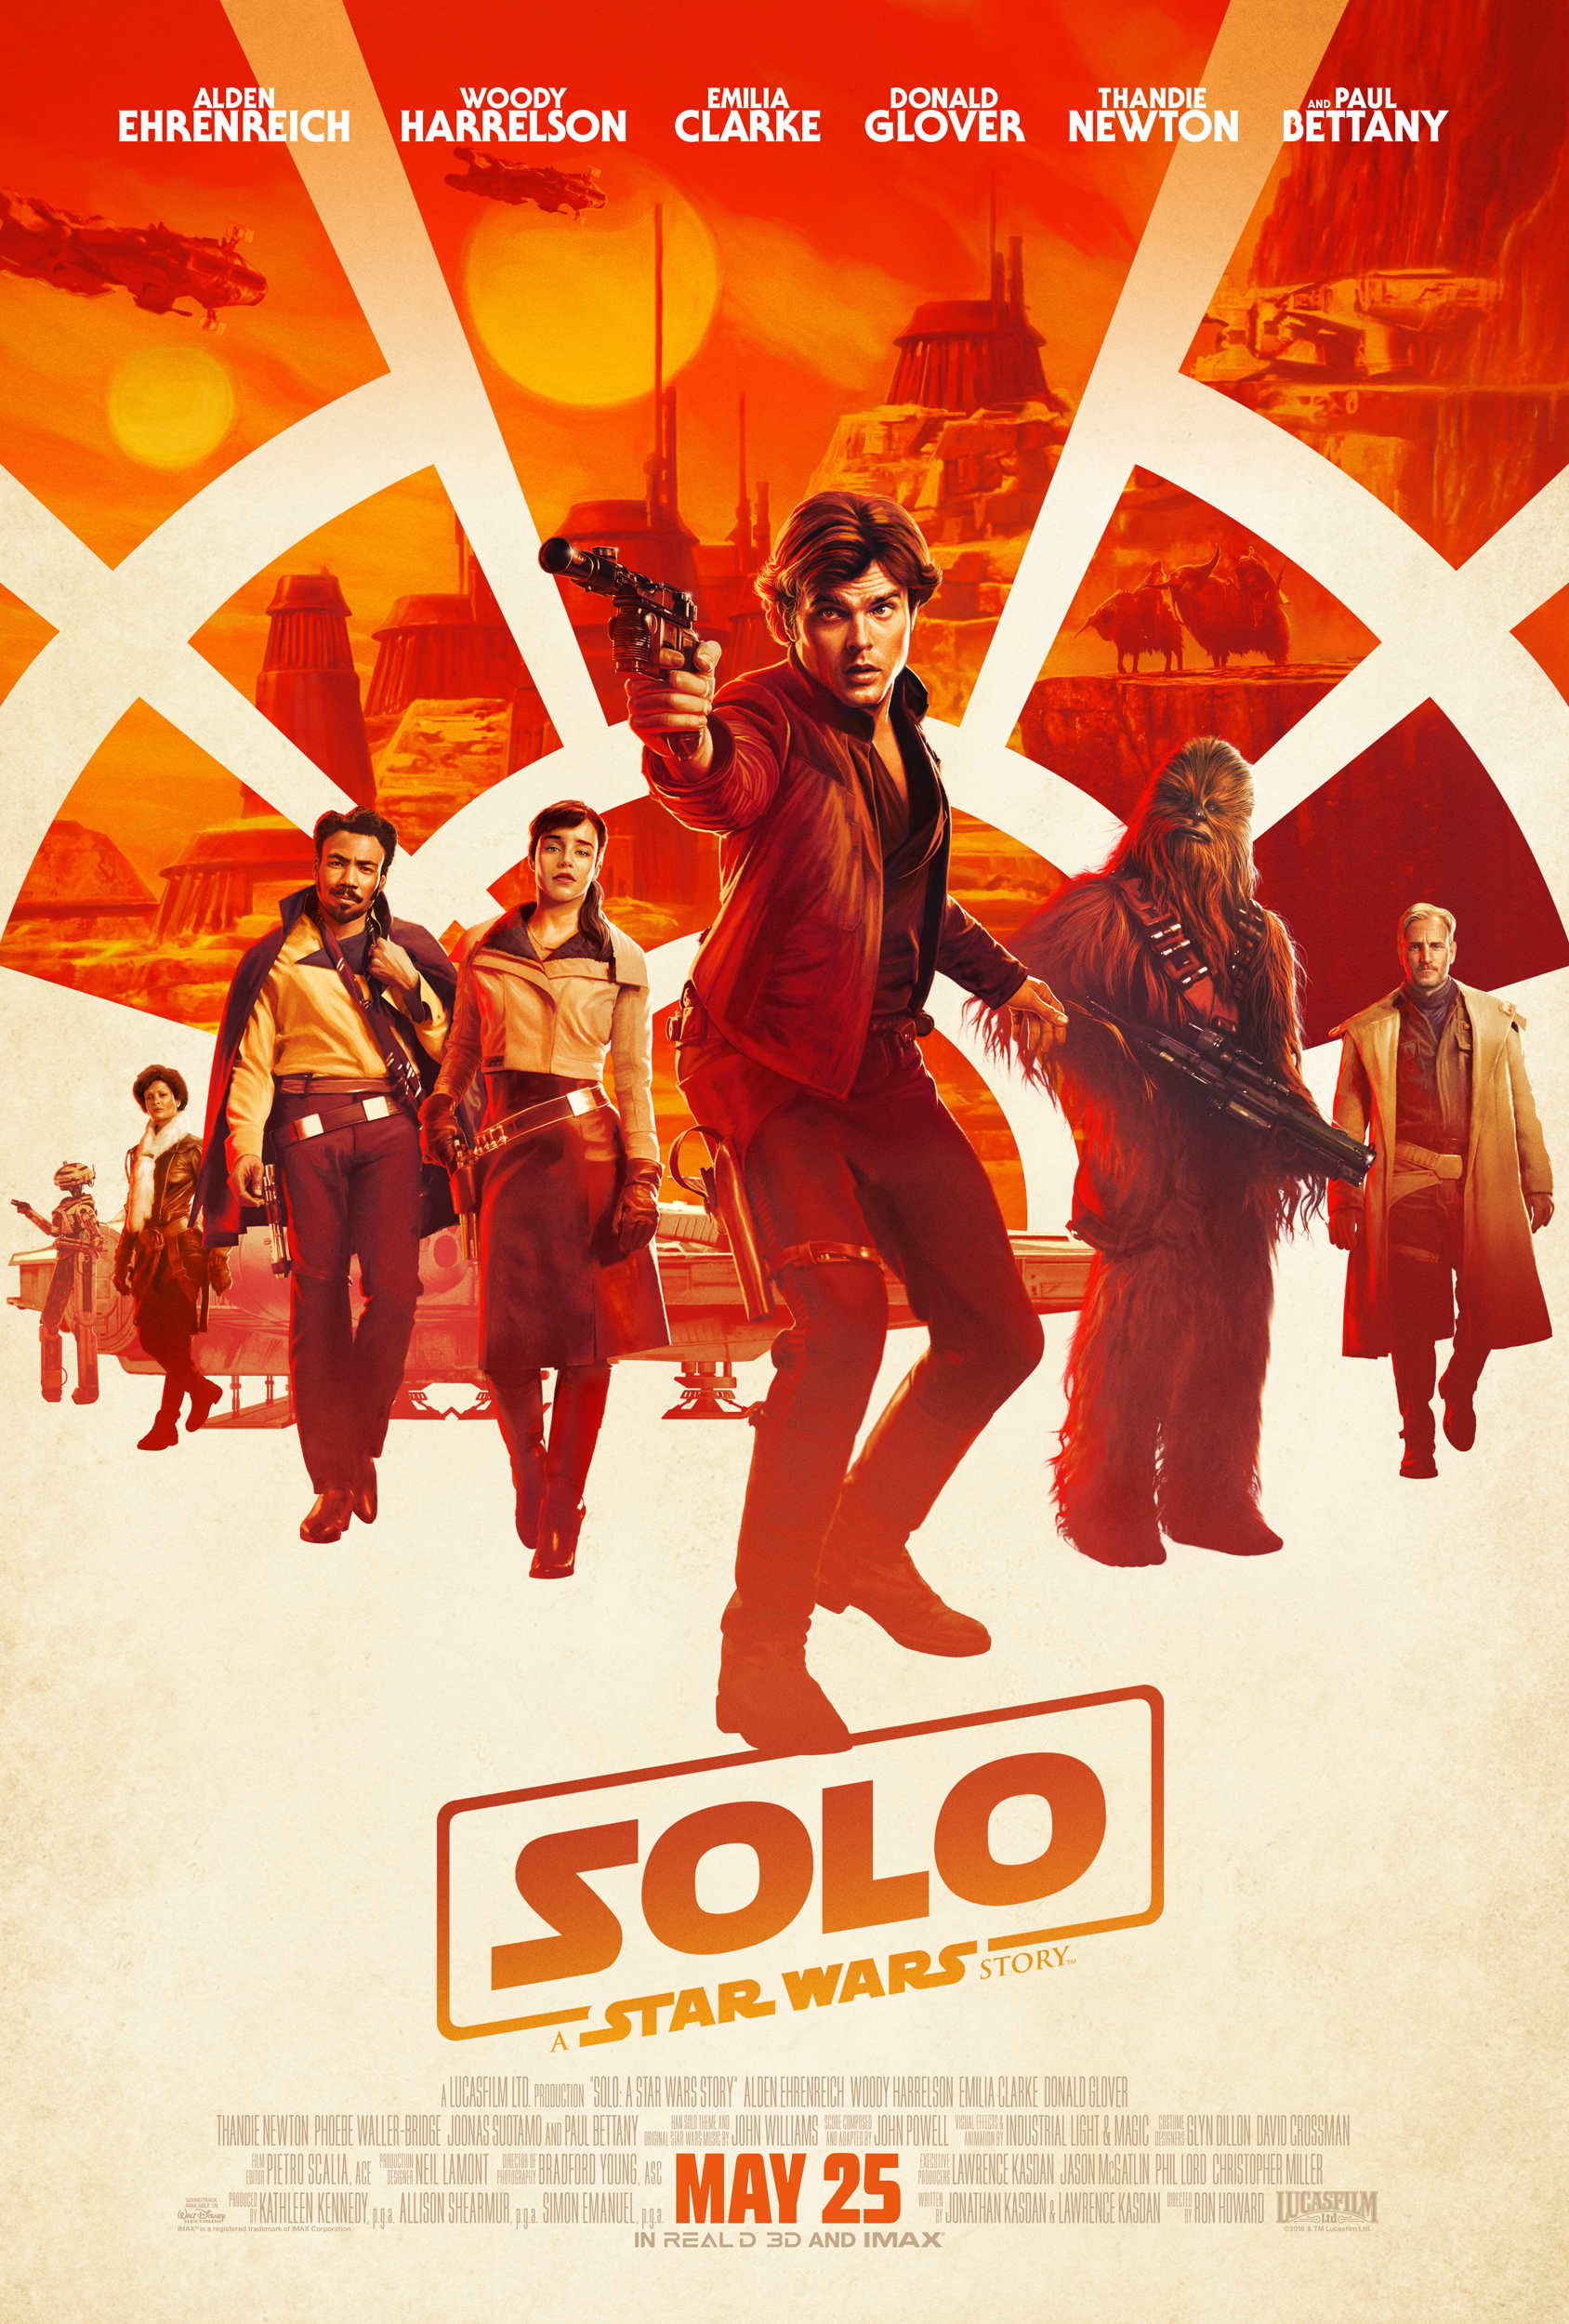 Solo: A Star Wars Story - Offizielles Poster